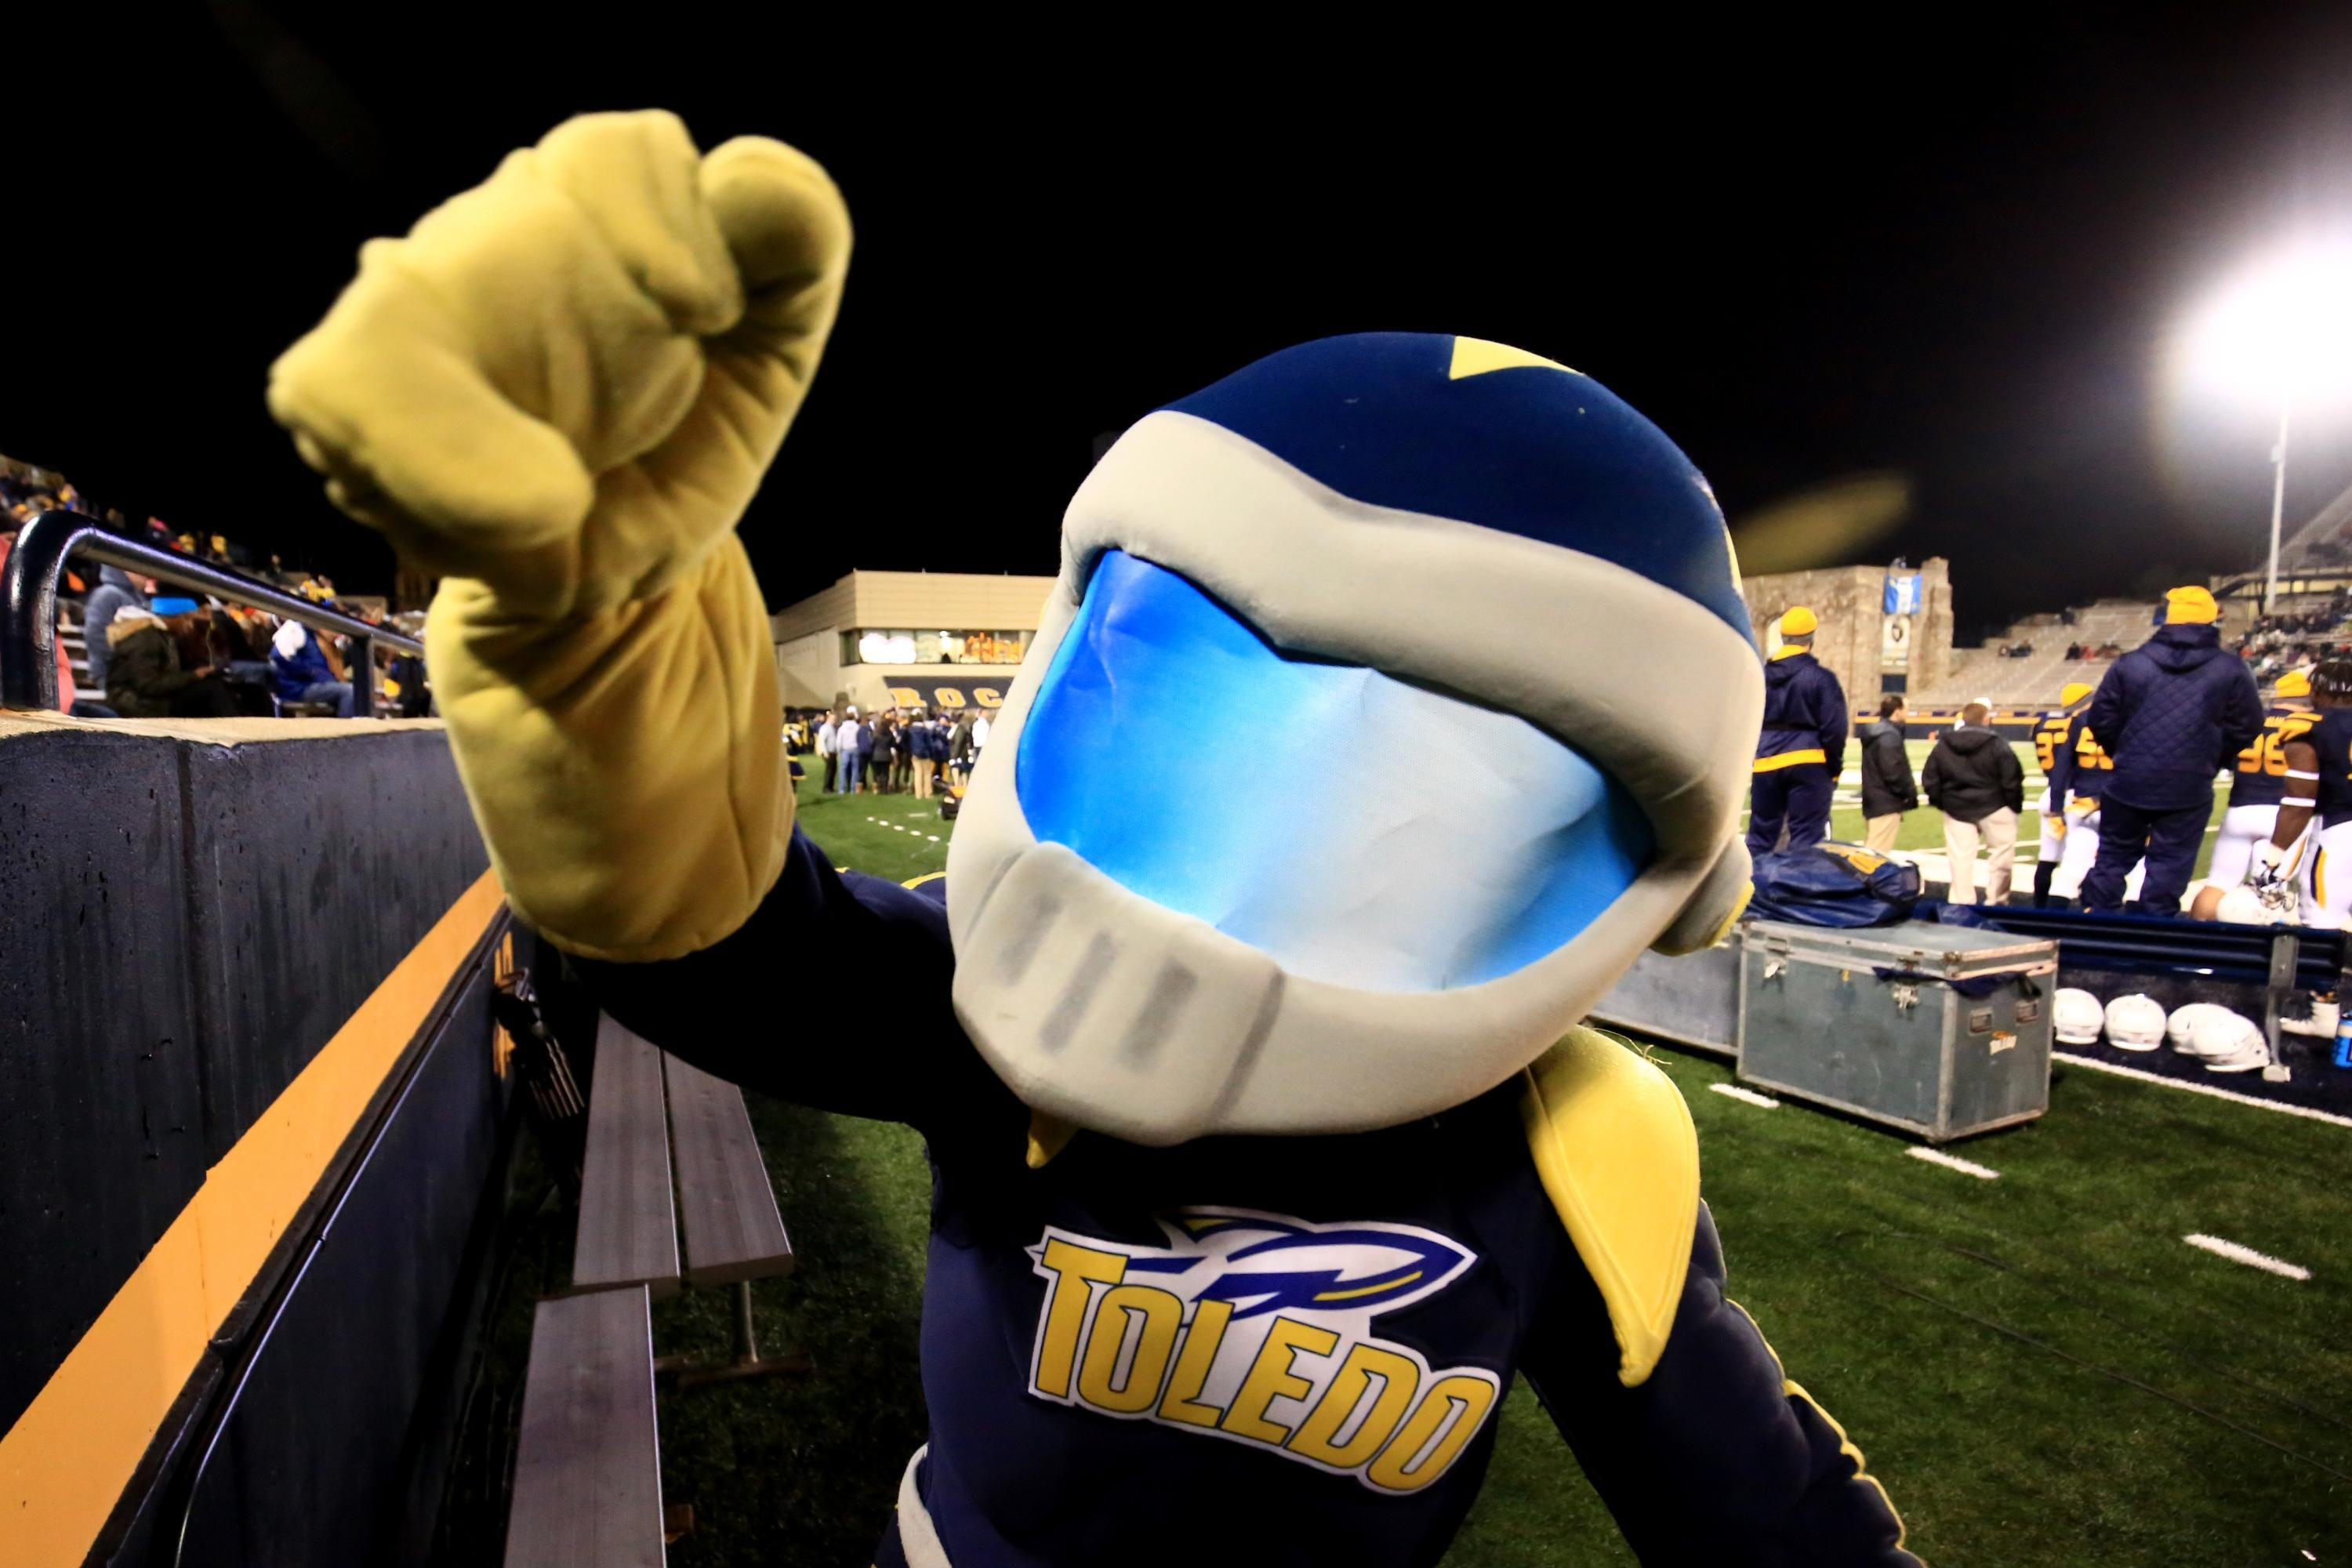 Rocky the Rocket will remain Toledo's mascot after a scare on Tuesday. (Getty Images)